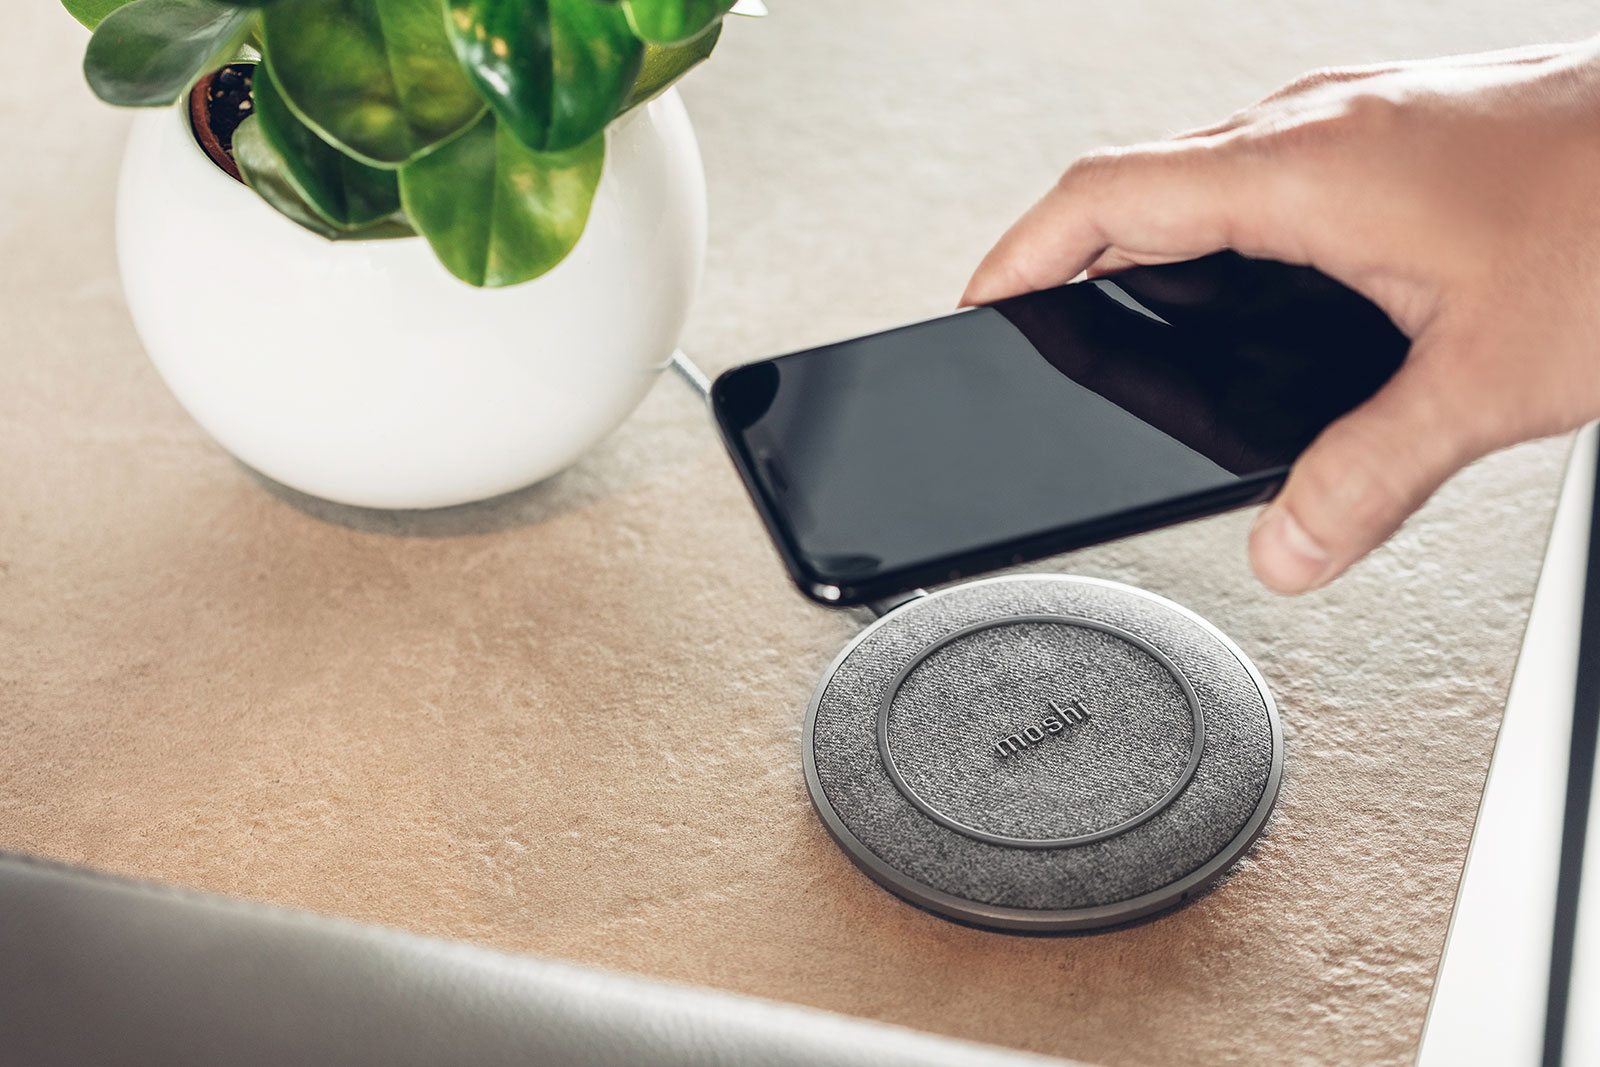 Nordic-inspired wireless charging